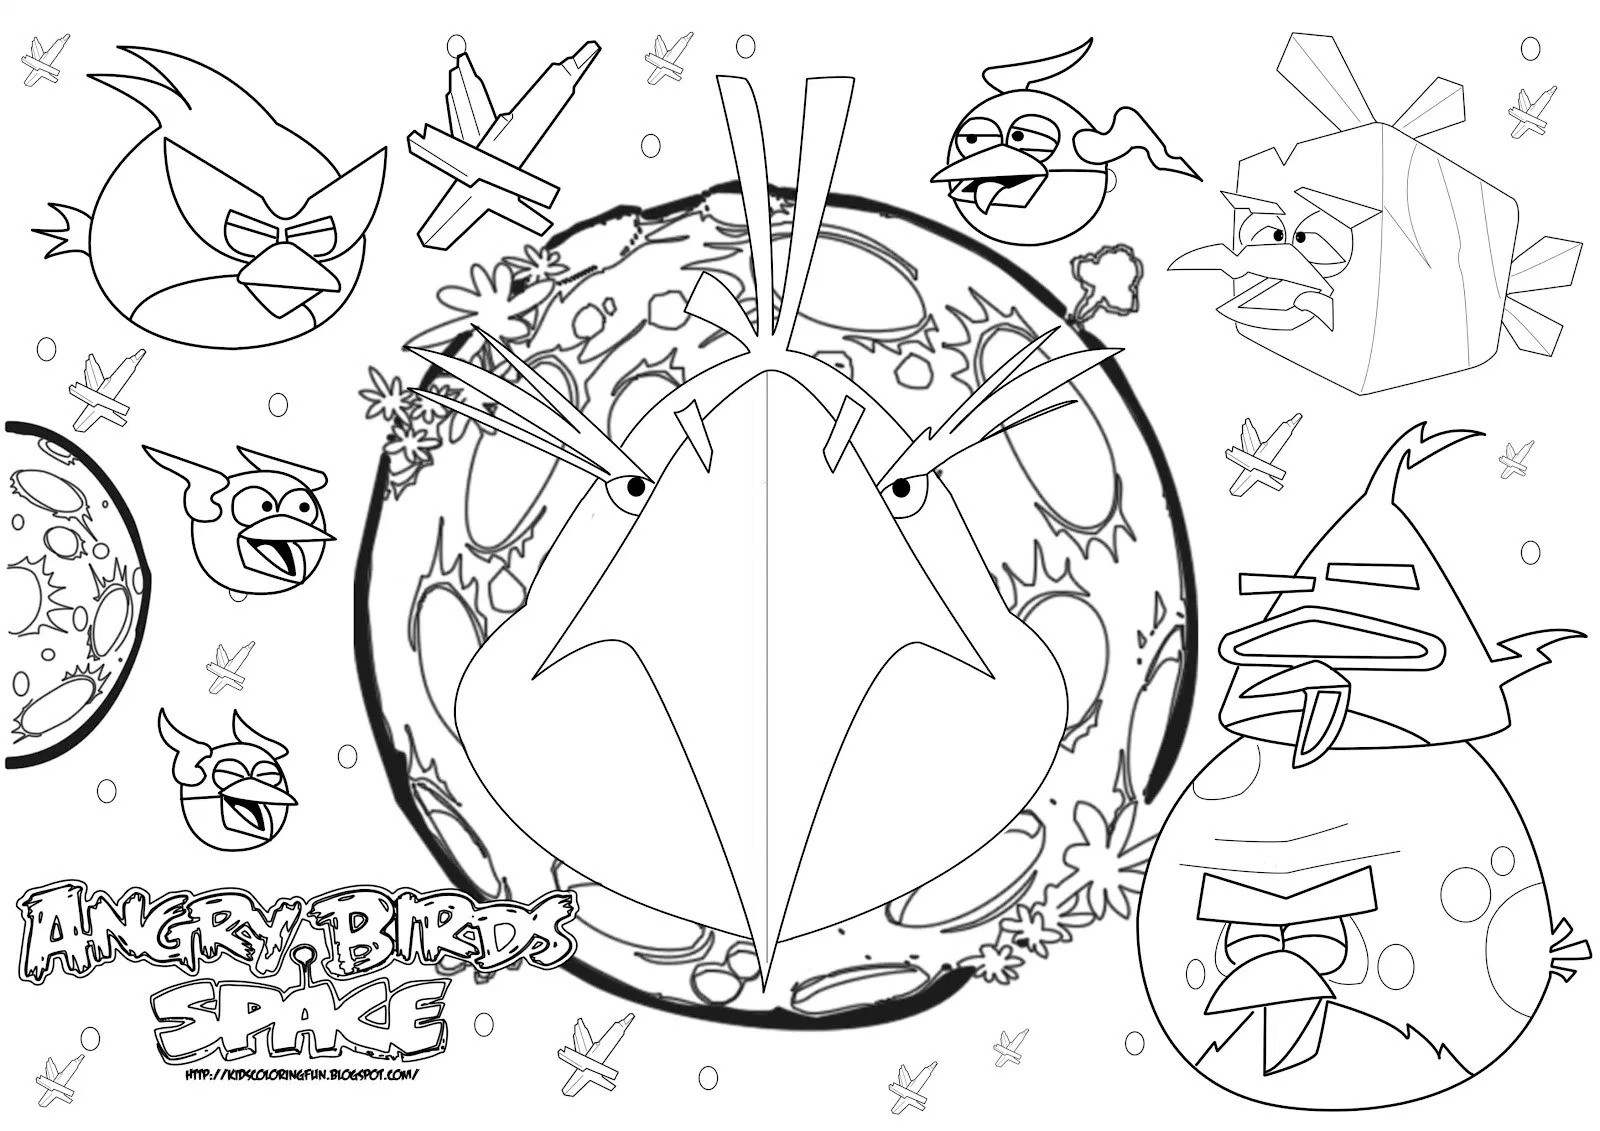 1600x1131 Angry Birds Space Coloring Page Bomb Bird In P